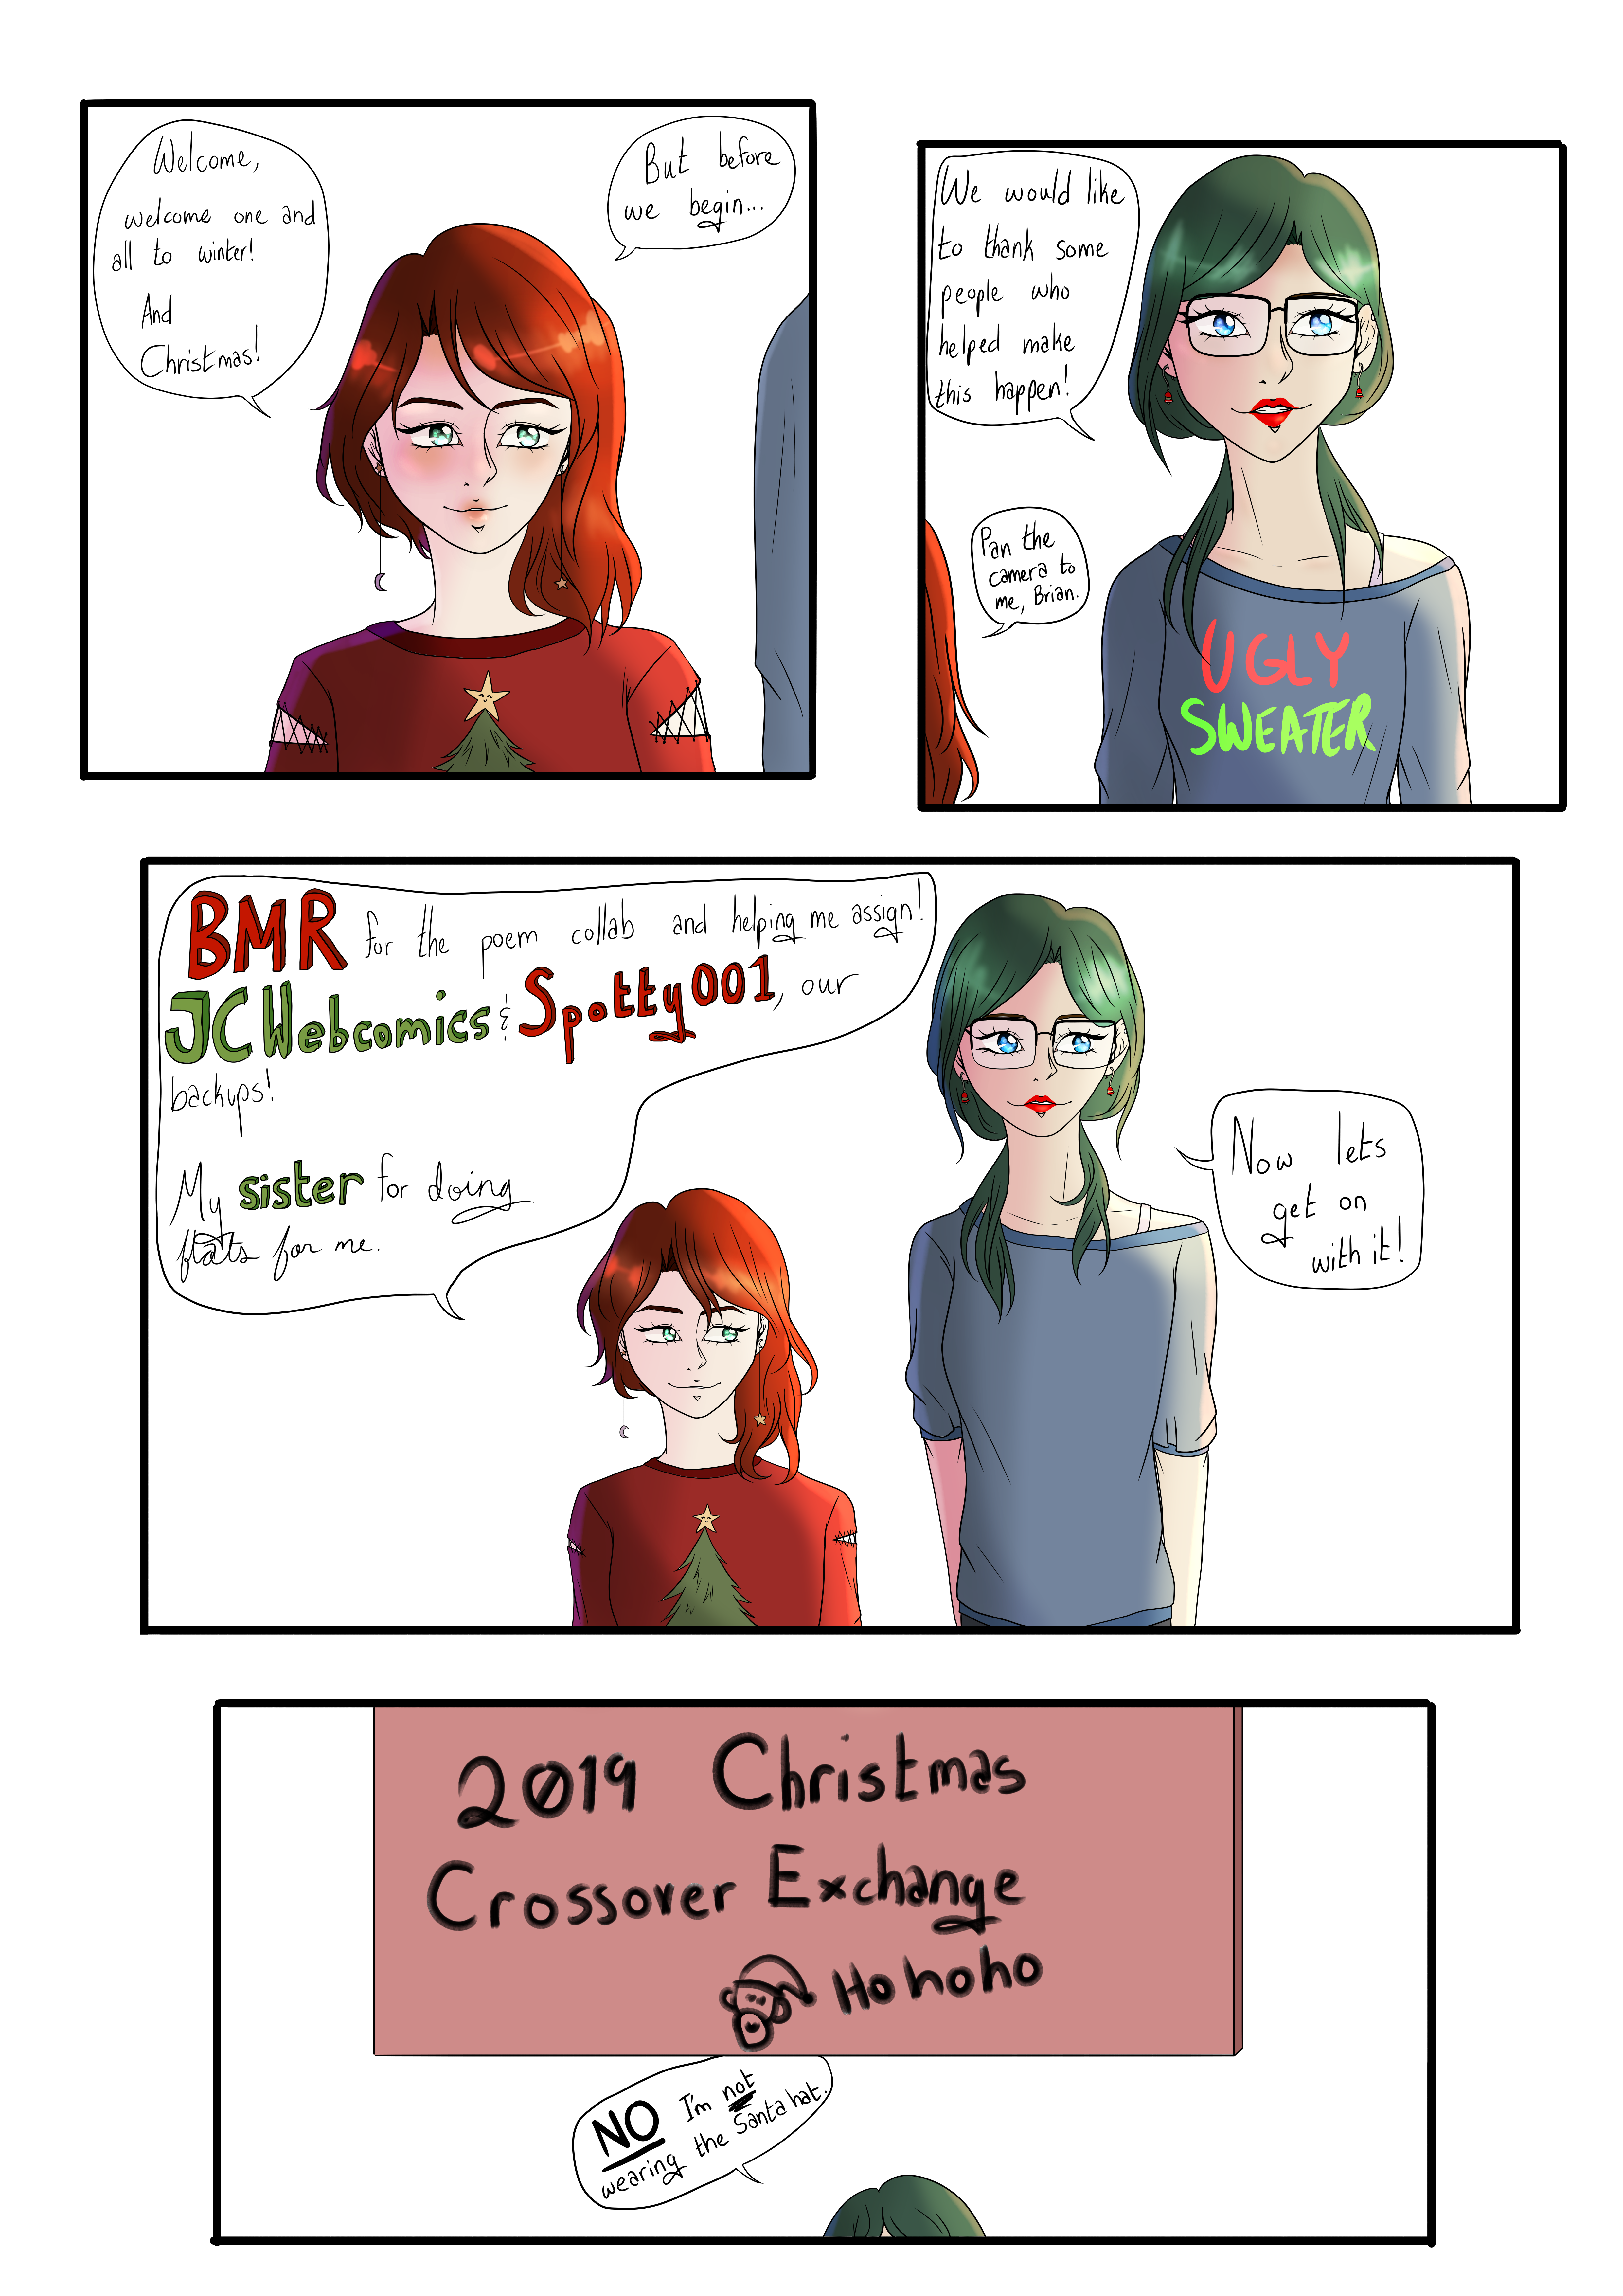 Christmas Crossover Exchange 2019 | She's Not Wearing The Santa Hat